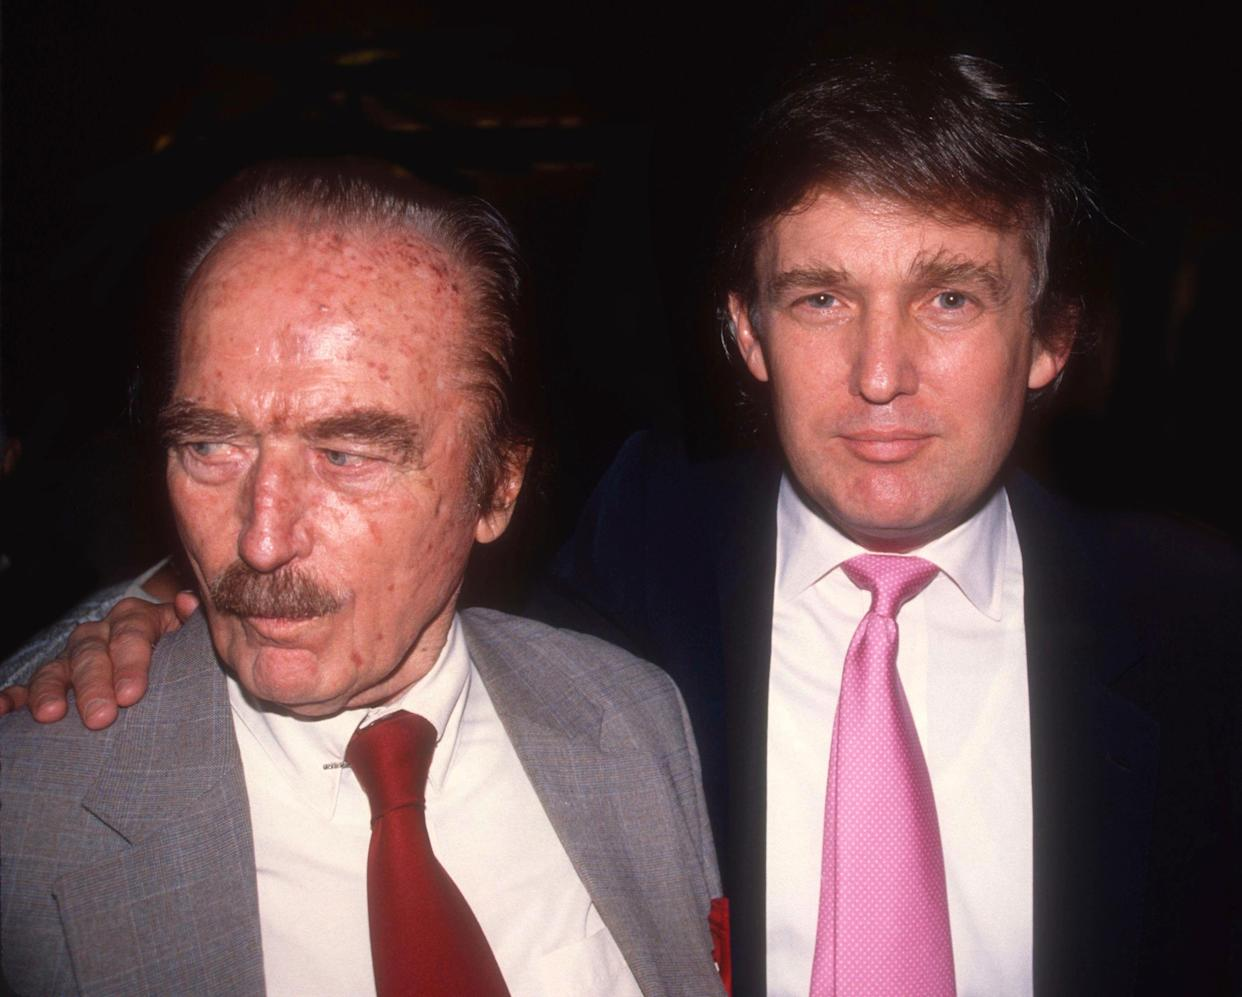 Fred Trump with Donald Trump. (Adam Scull/Photolink/MediaPunch/IPX)